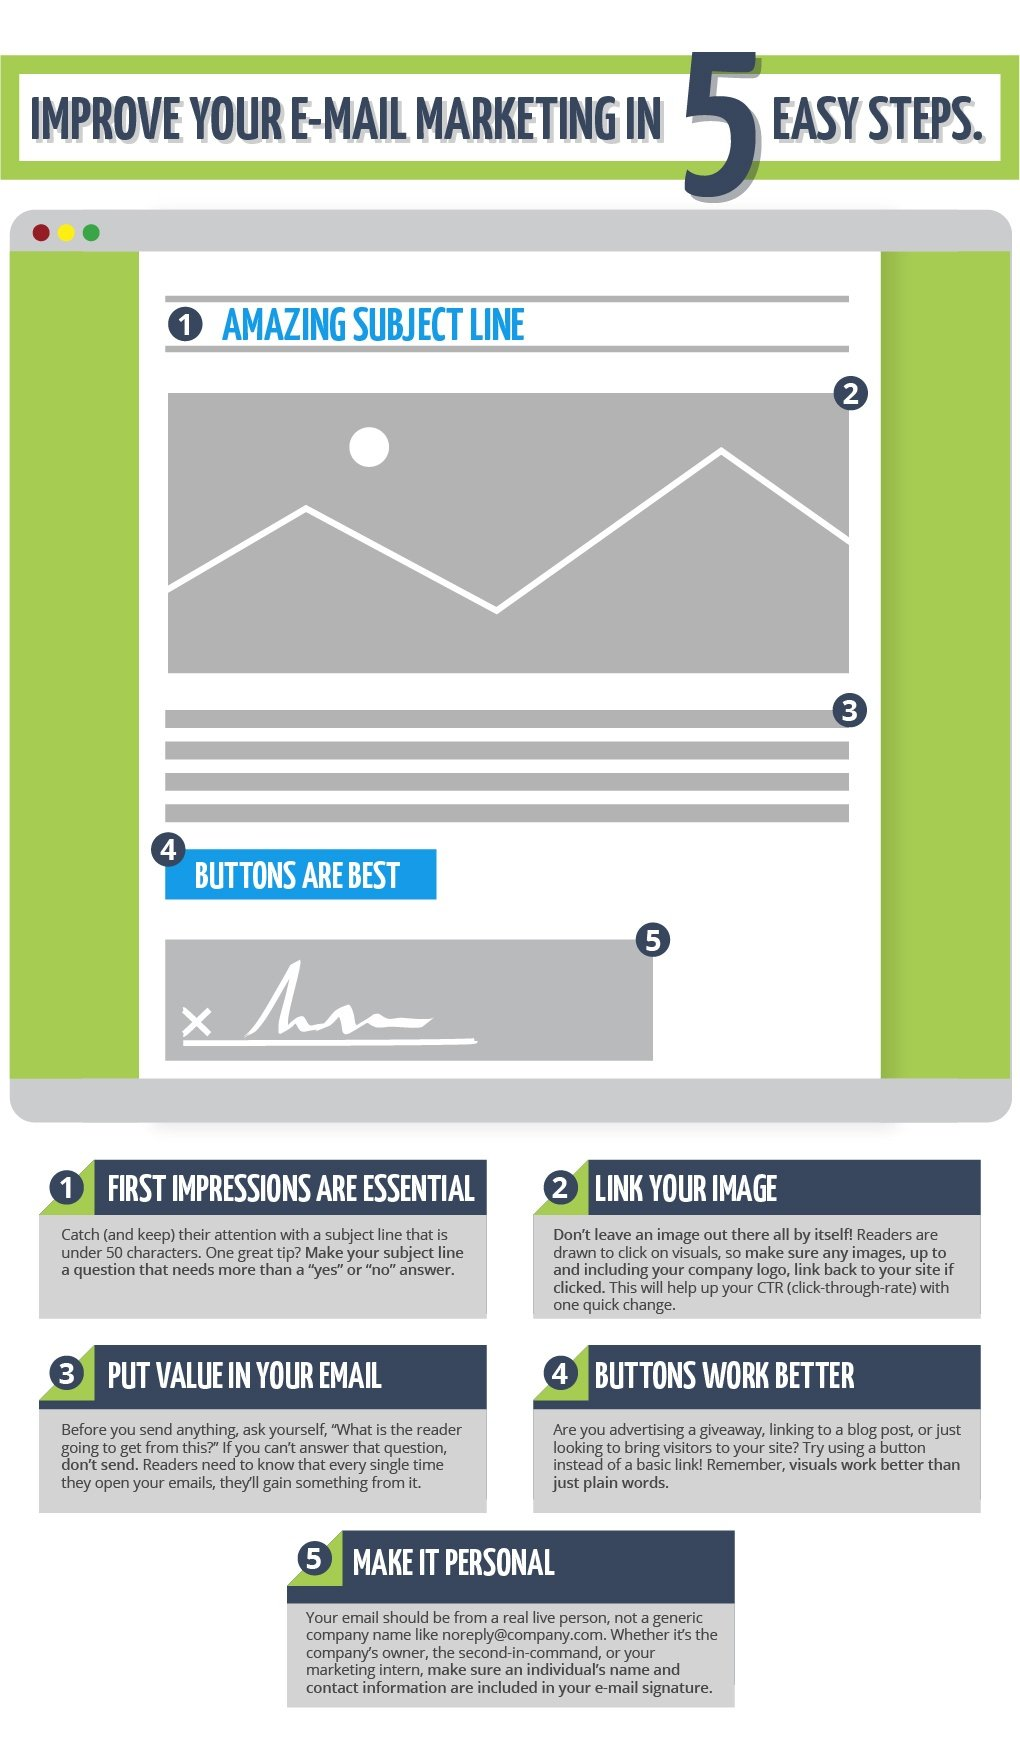 Improve E-mail Marketing Infographic